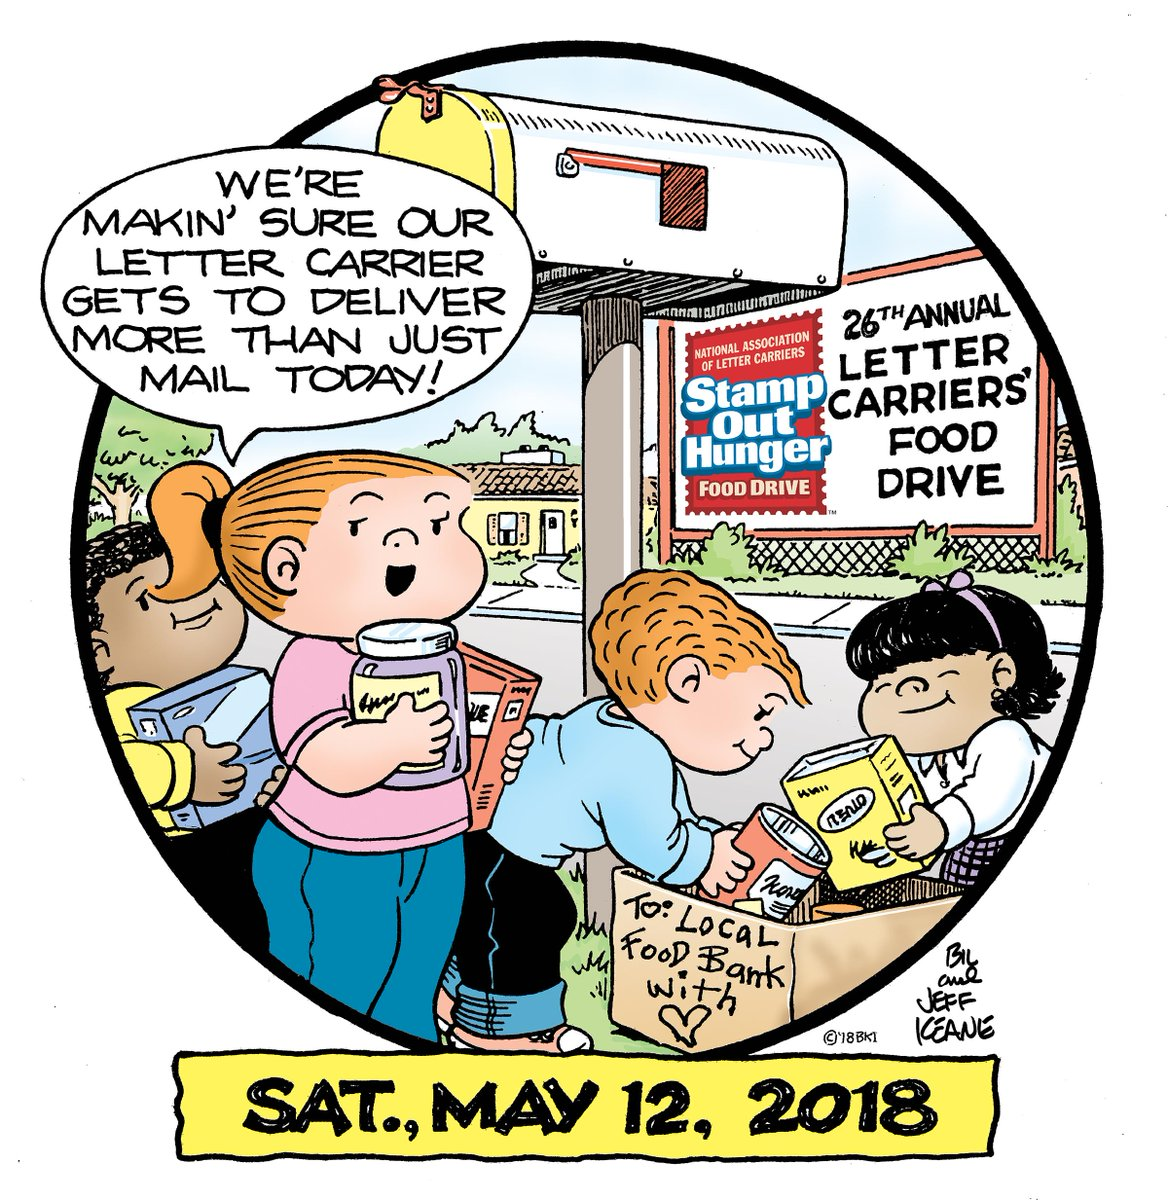 Montgomery area fb on twitter the 26th annual national association all you need to do is leave a donation near your mailbox tonight and your letter carrier will pick it up as they complete their regular altavistaventures Images